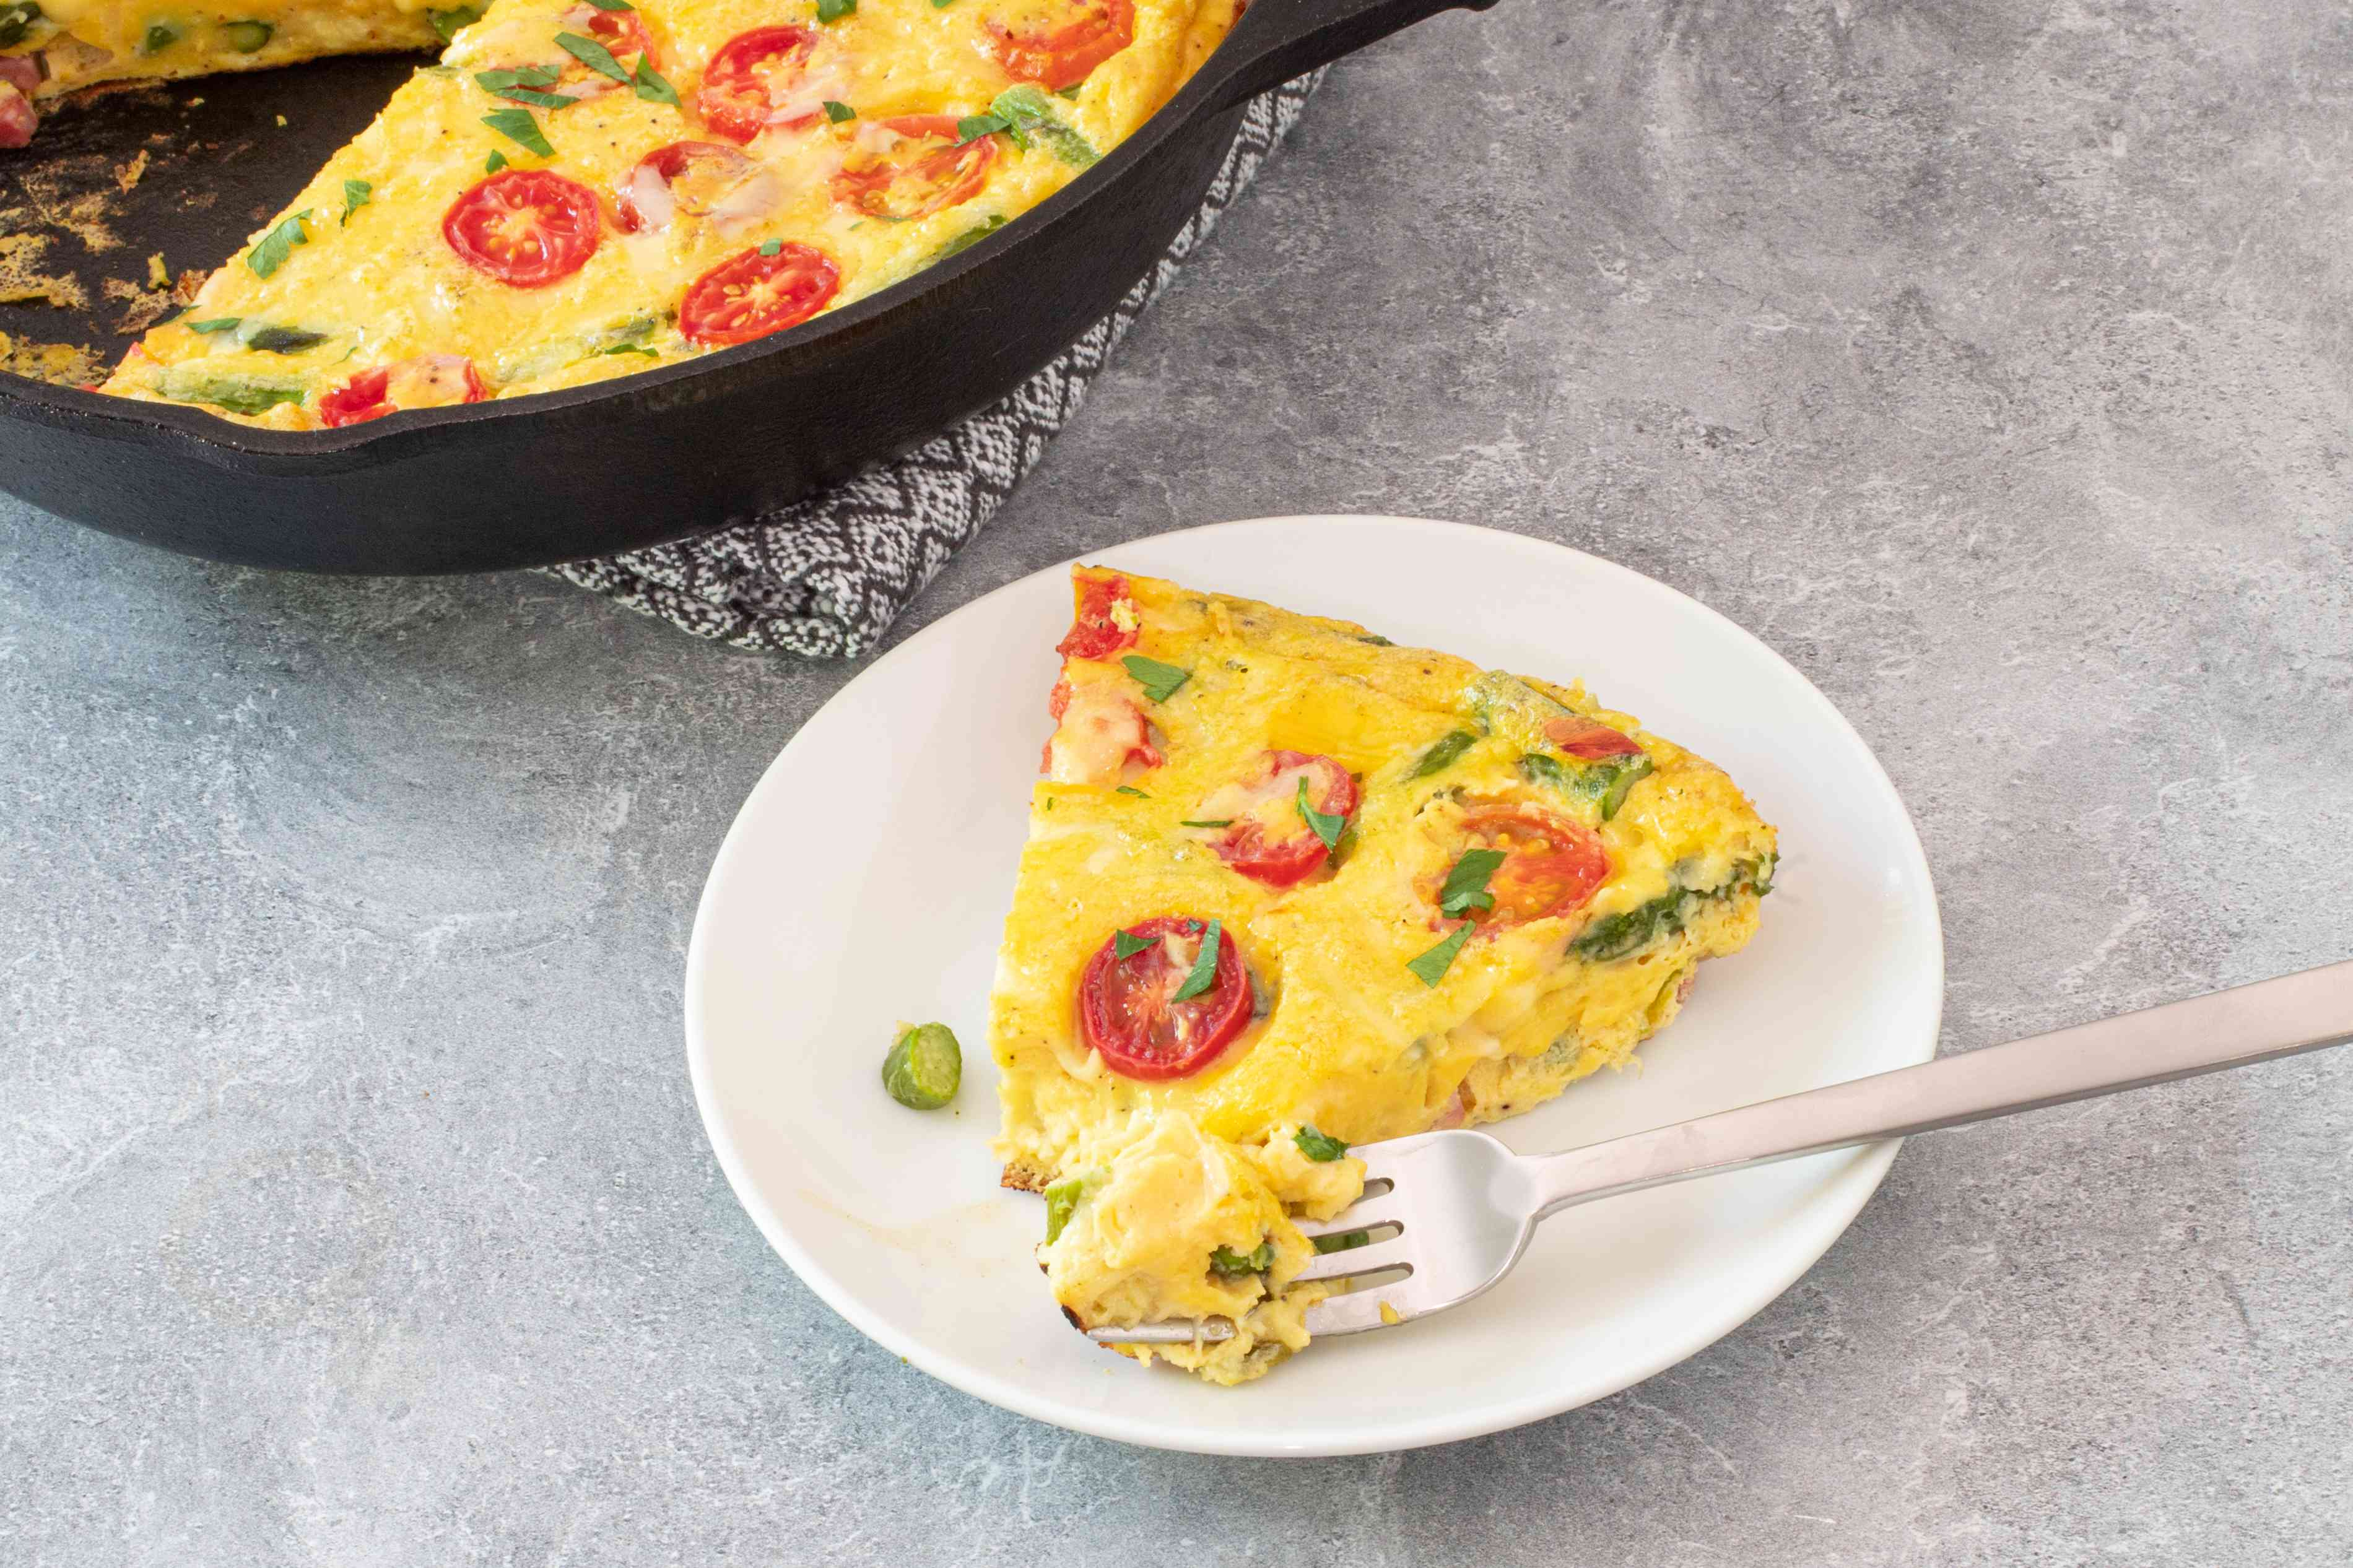 slice of frittata next to the skillet